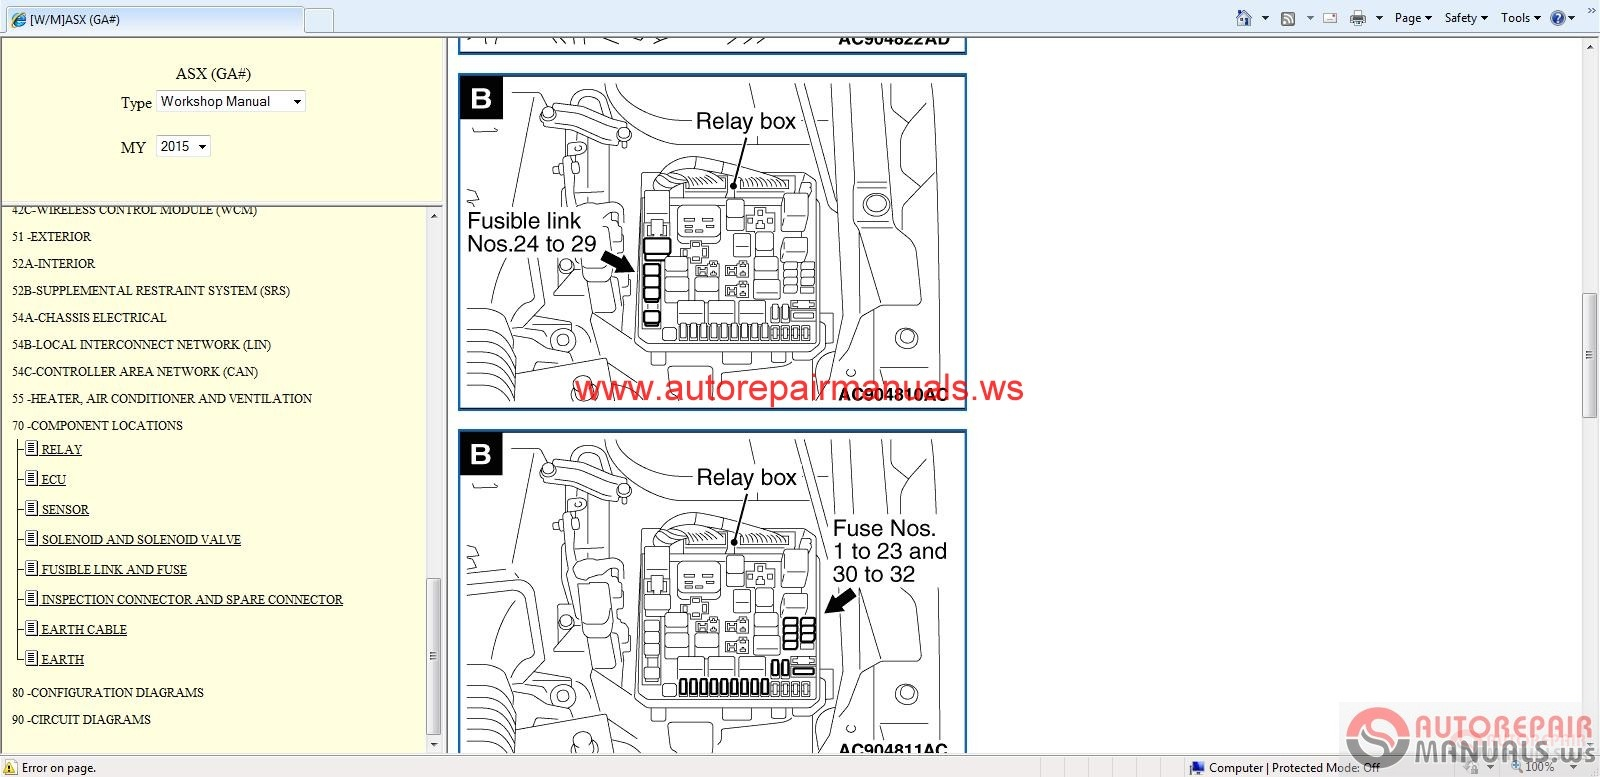 2002 Eclipse Fuse Block Diagram All Kind Of Wiring Diagrams 2003 Mitsubishi Box Thermostat Location Free Engine Image For User Manual Download Gm